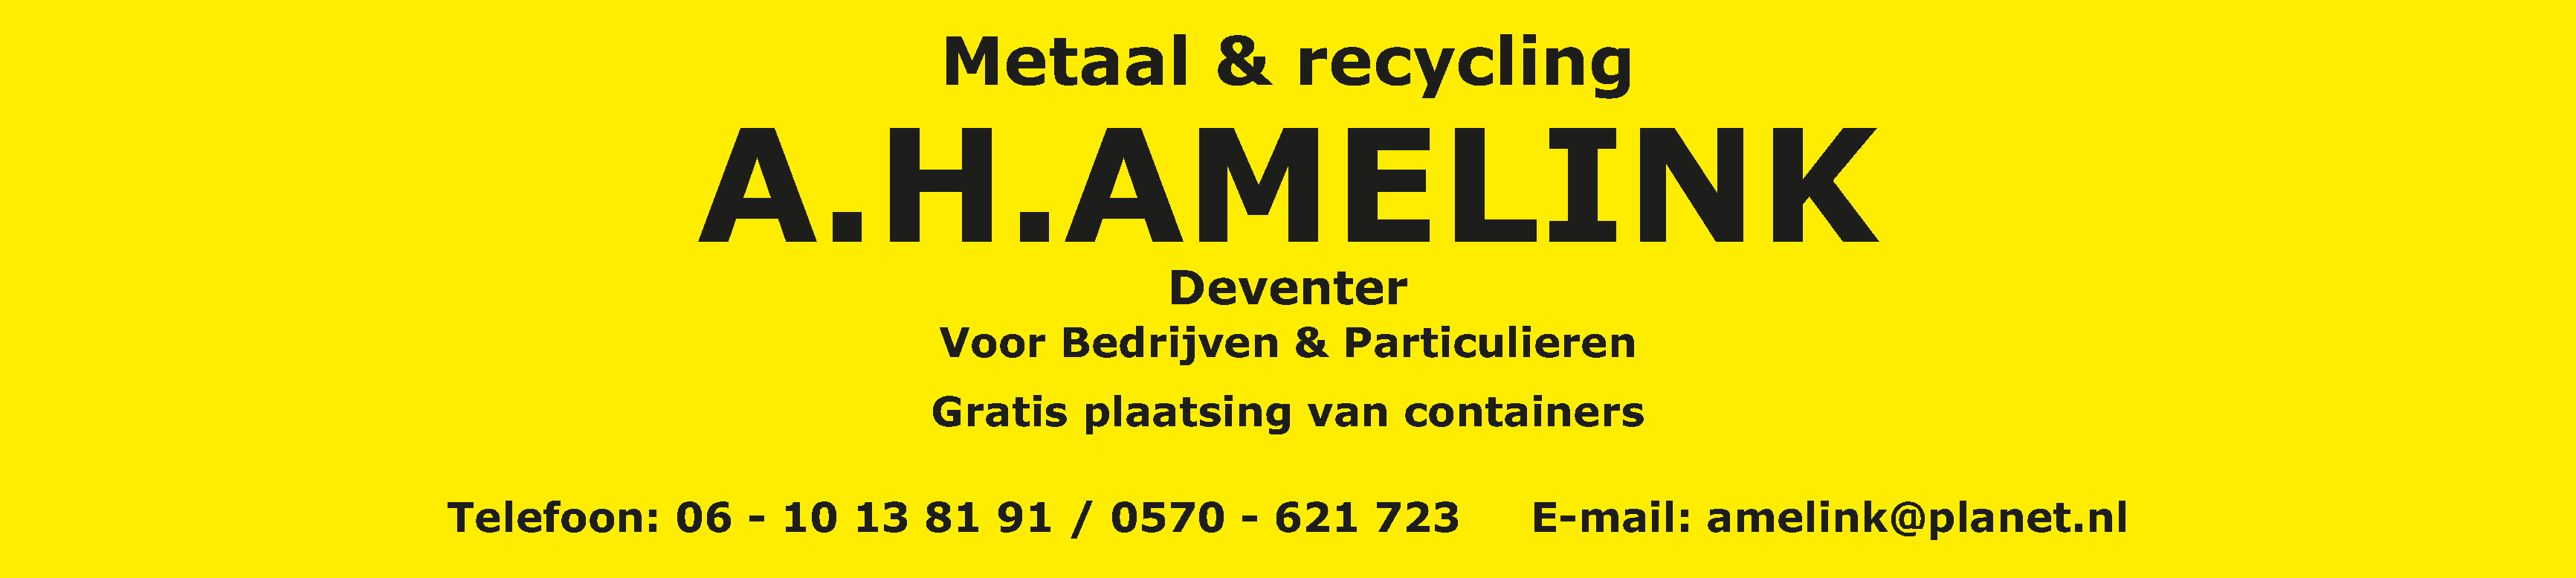 A.H. Amelink Metaal & Recycling